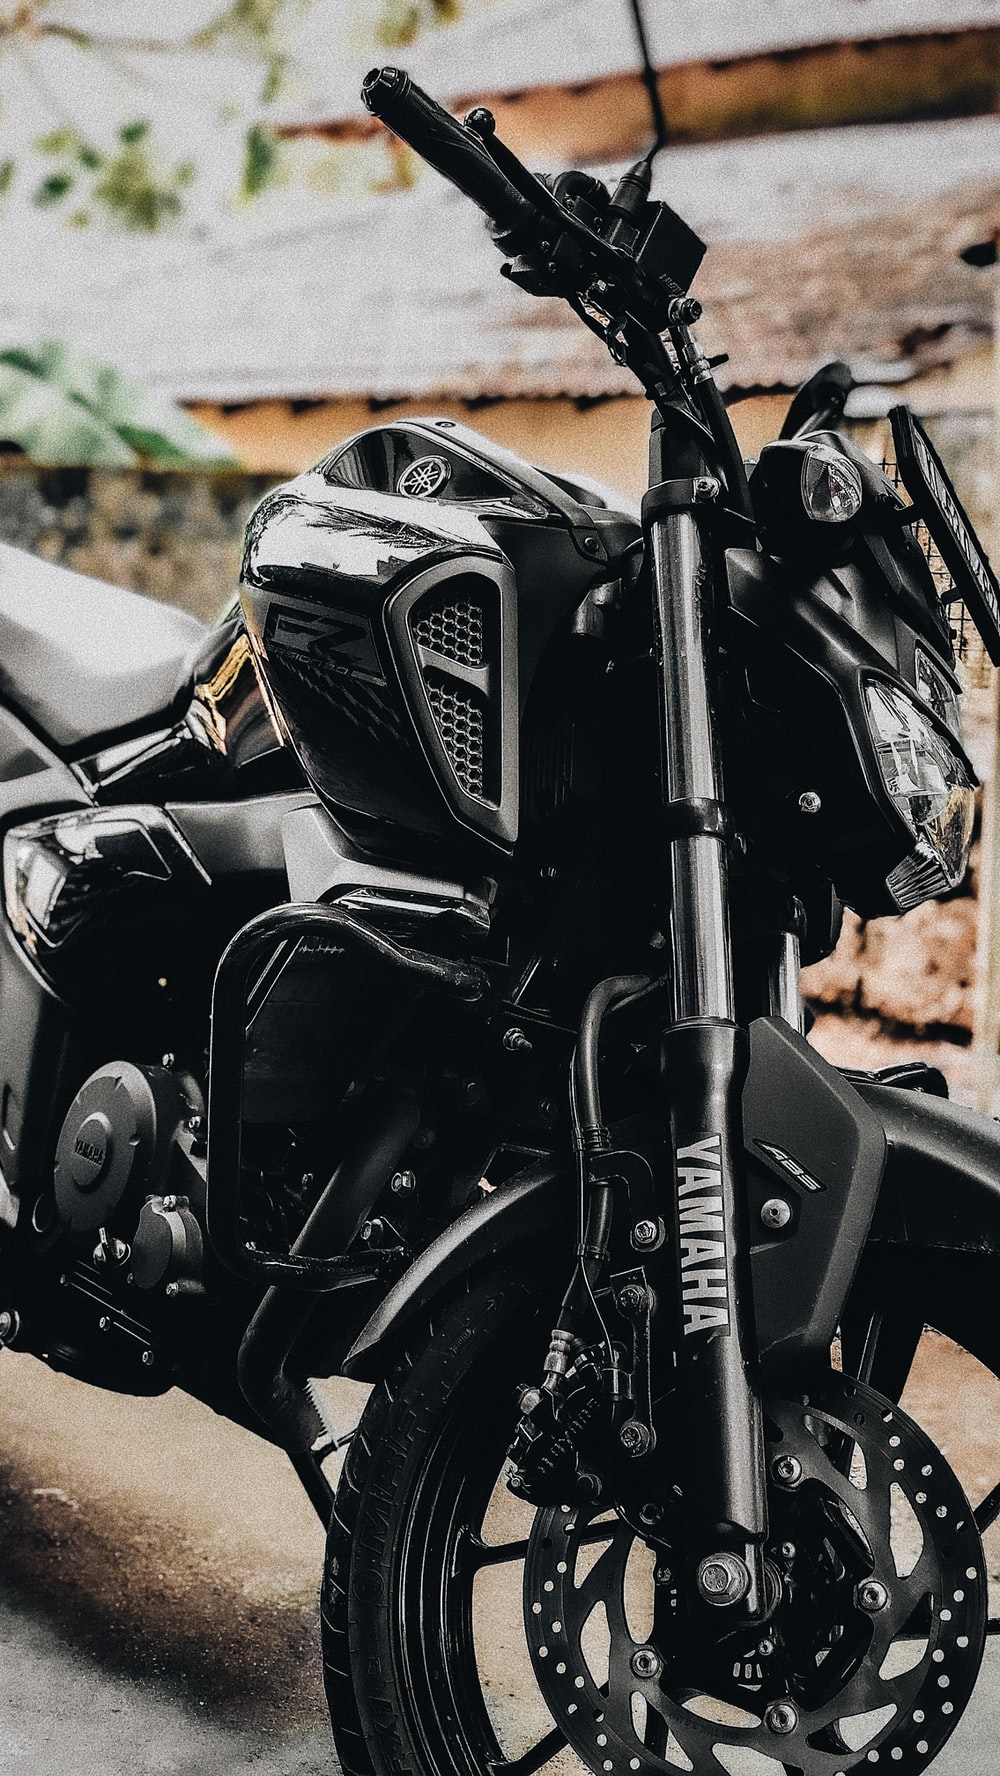 black and gray motorcycle during daytime